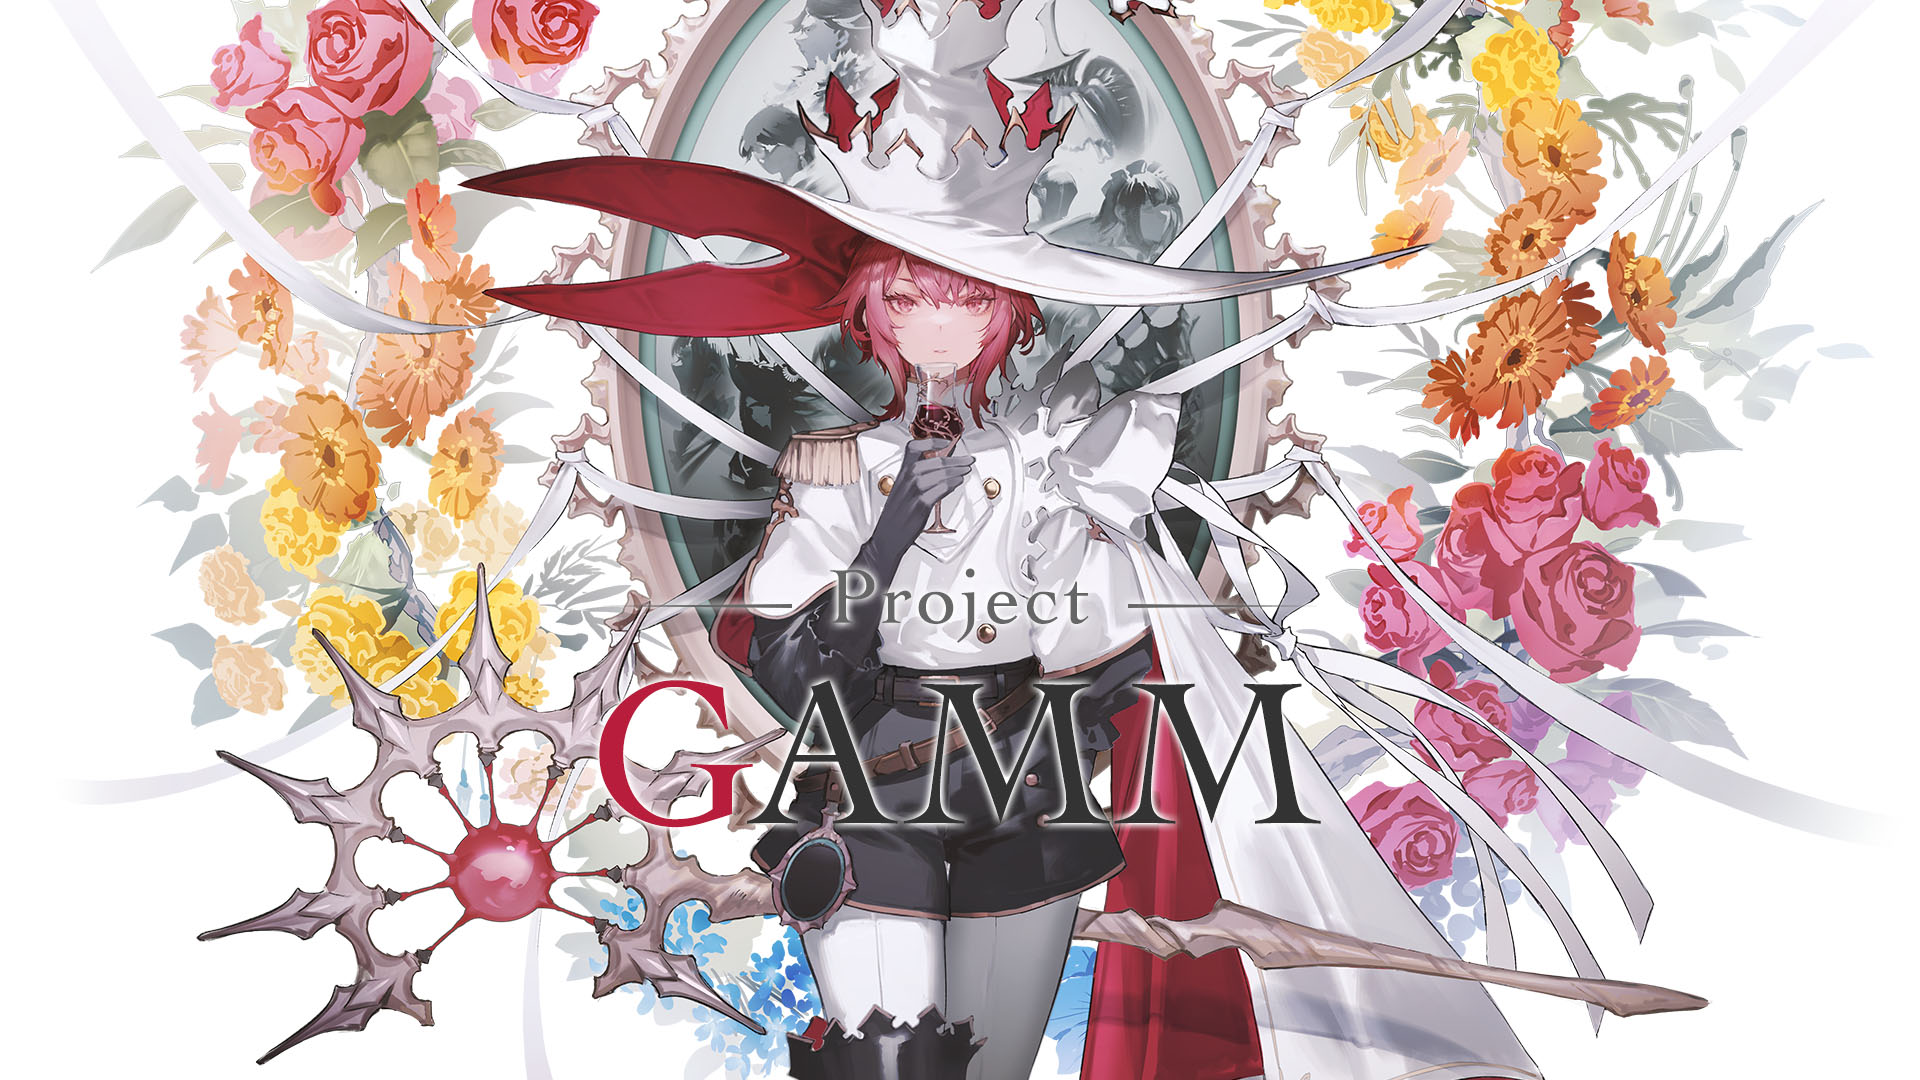 Project GAMM Officially Announced